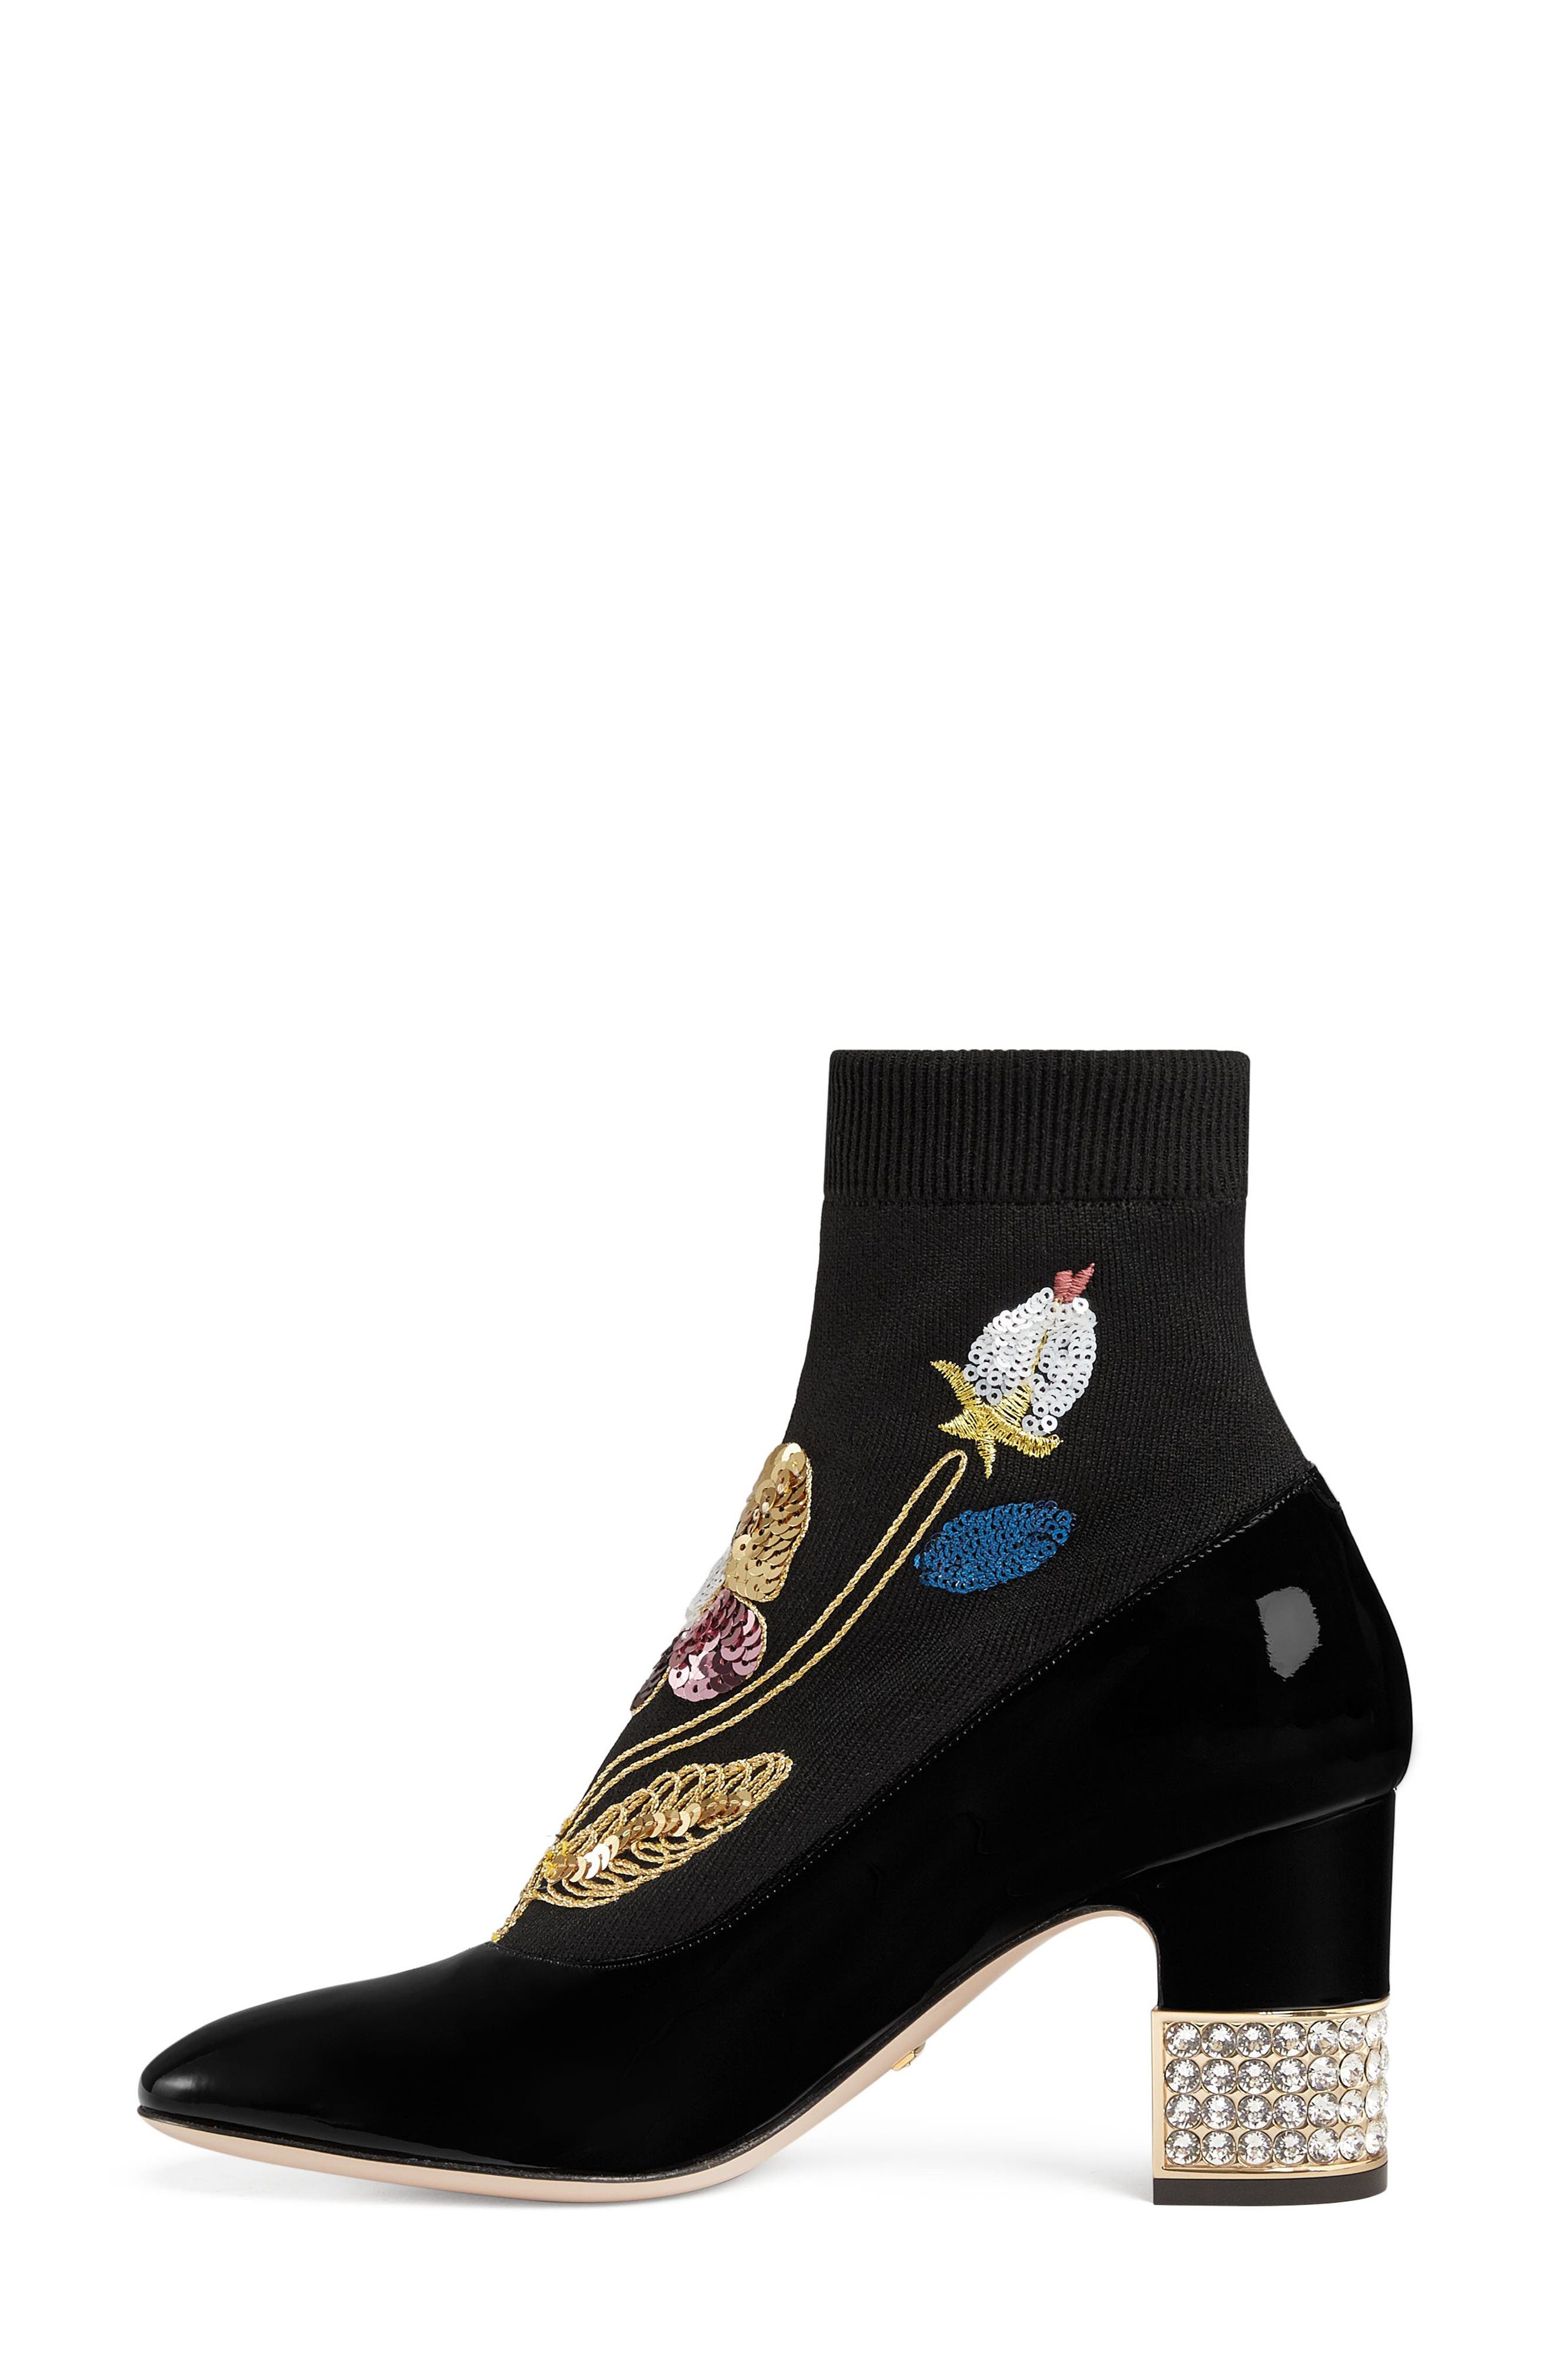 Candy Floral Embroidered Bootie,                             Alternate thumbnail 3, color,                             BLACK